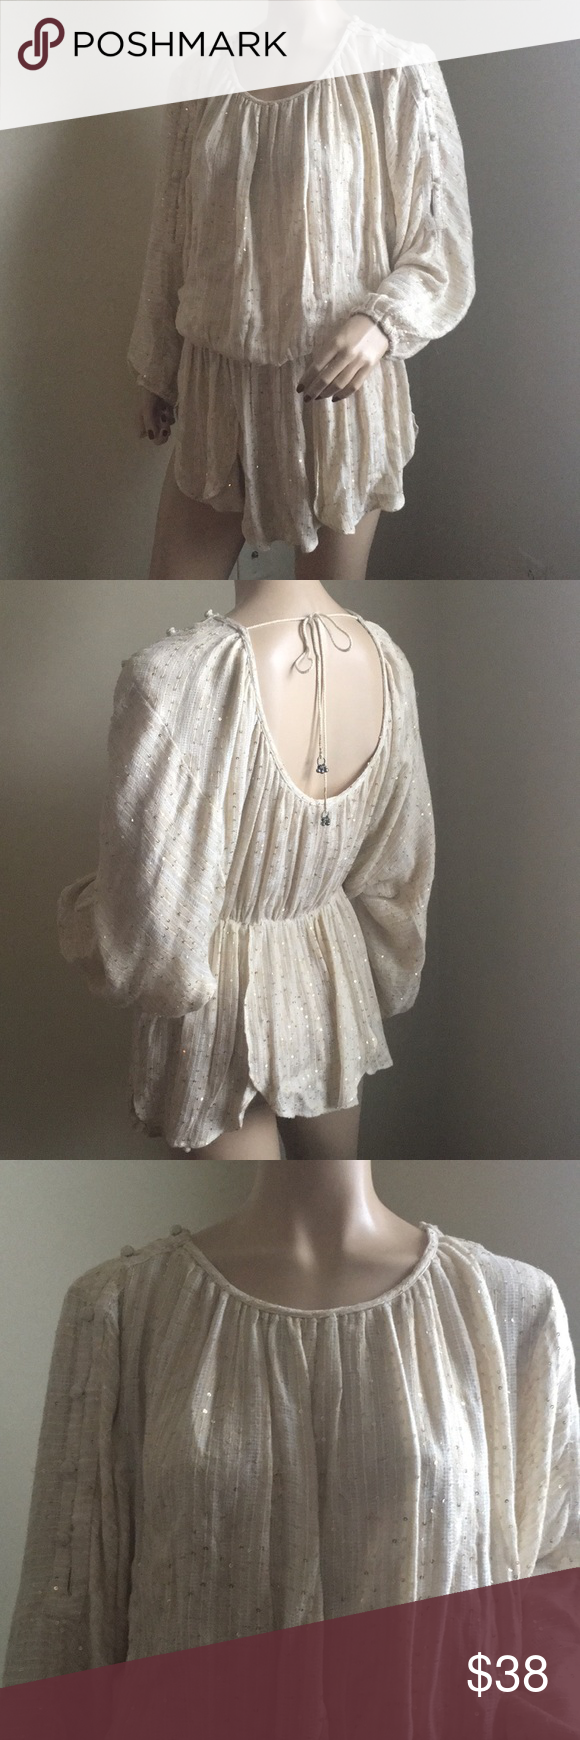 bc43dfc9589 Free People NWOT sequin Boho Tunic XS Beautiful Bohemian tunic from Free  People . Fabric is lightweight gauze in off white with shimmering gold  threads and ...